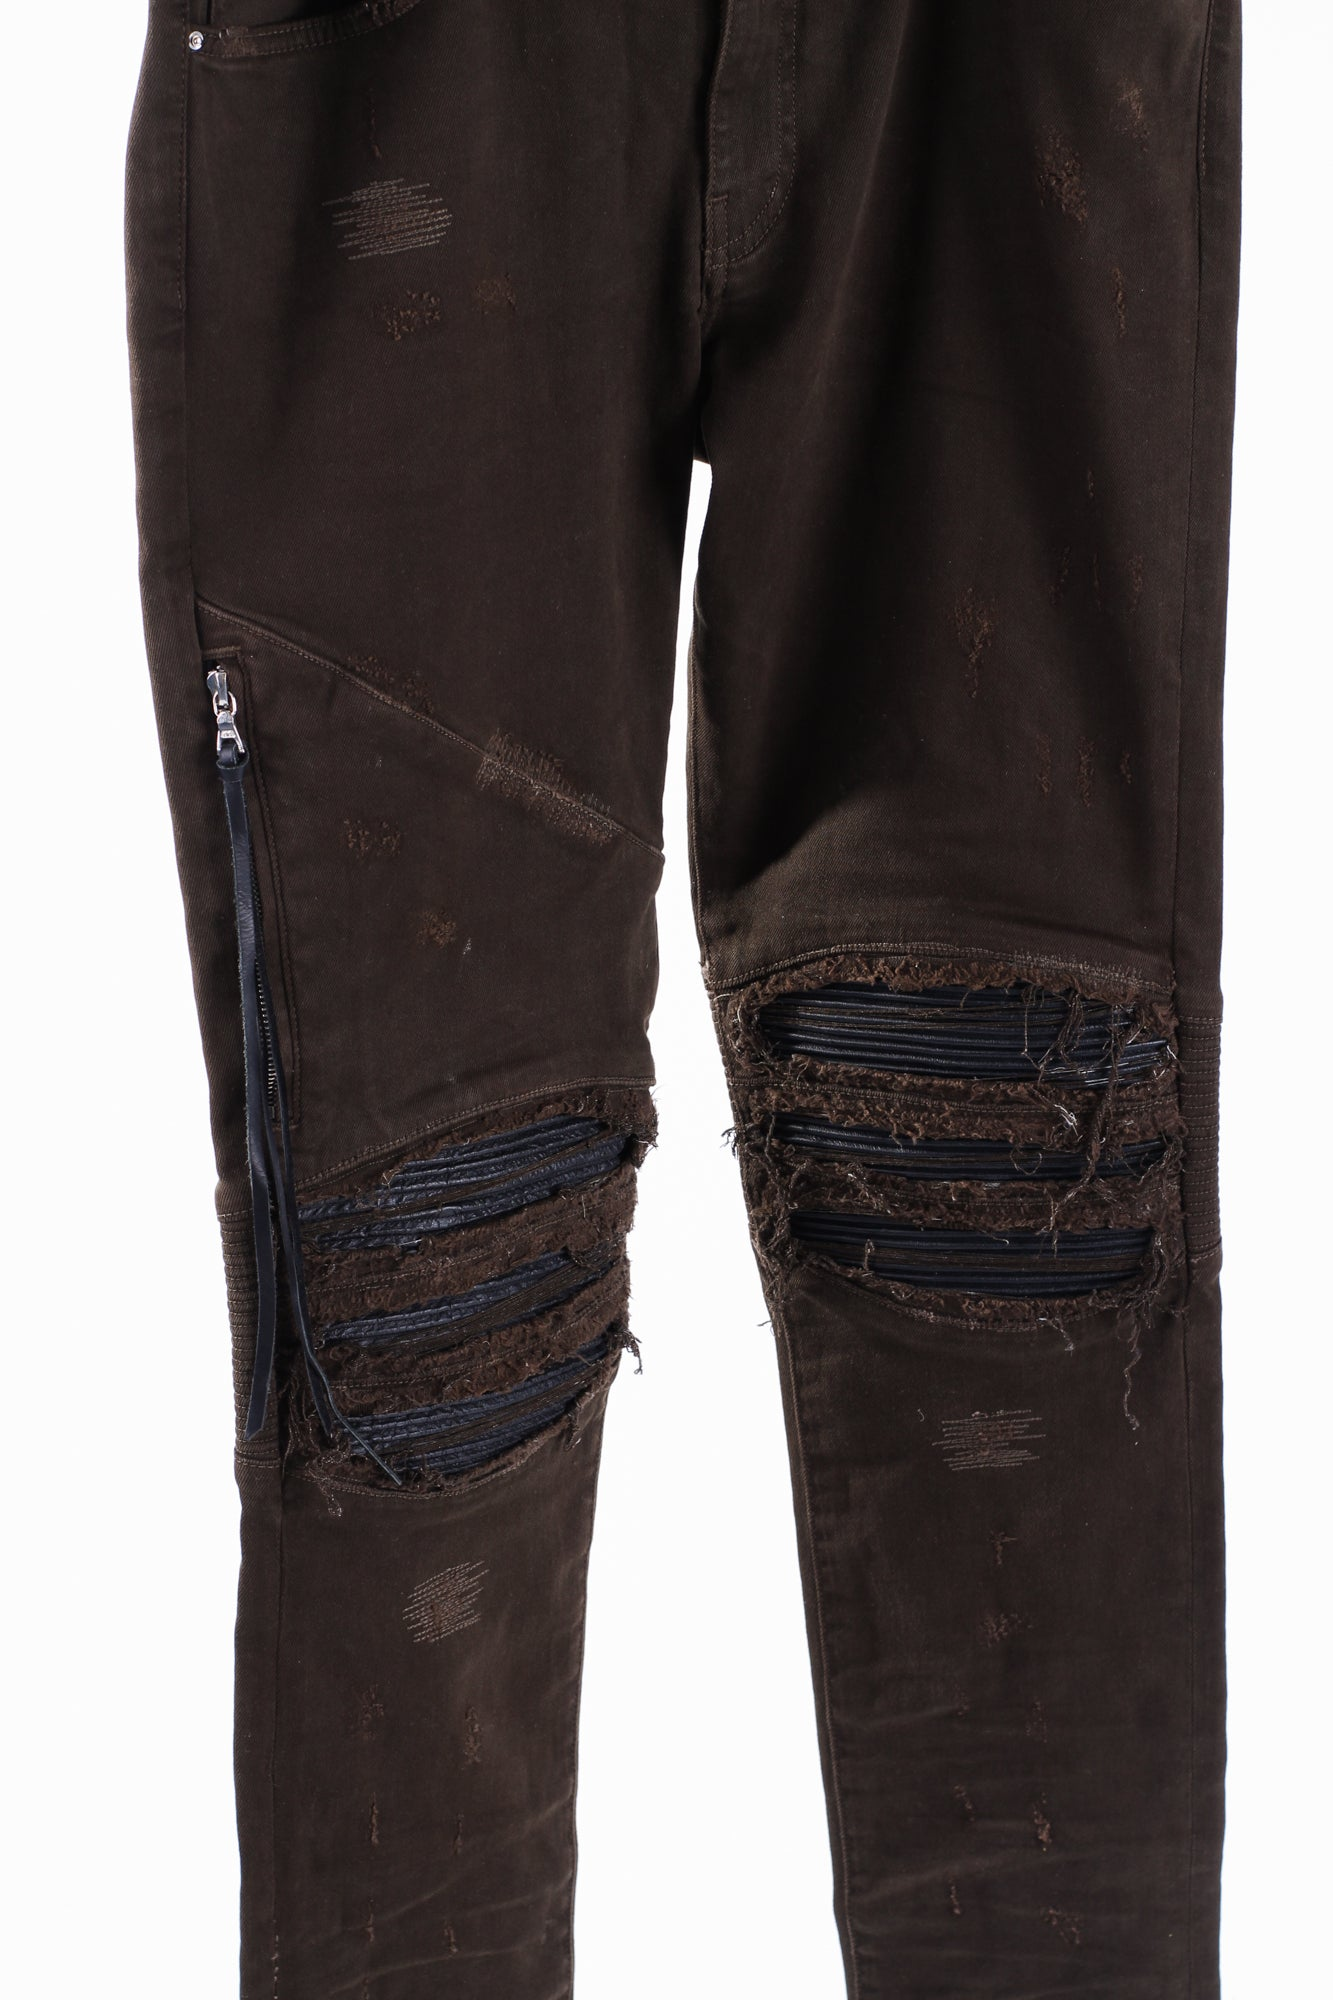 Amiri Frayed Knee Jeans Olive/ Brown Men Waist 32